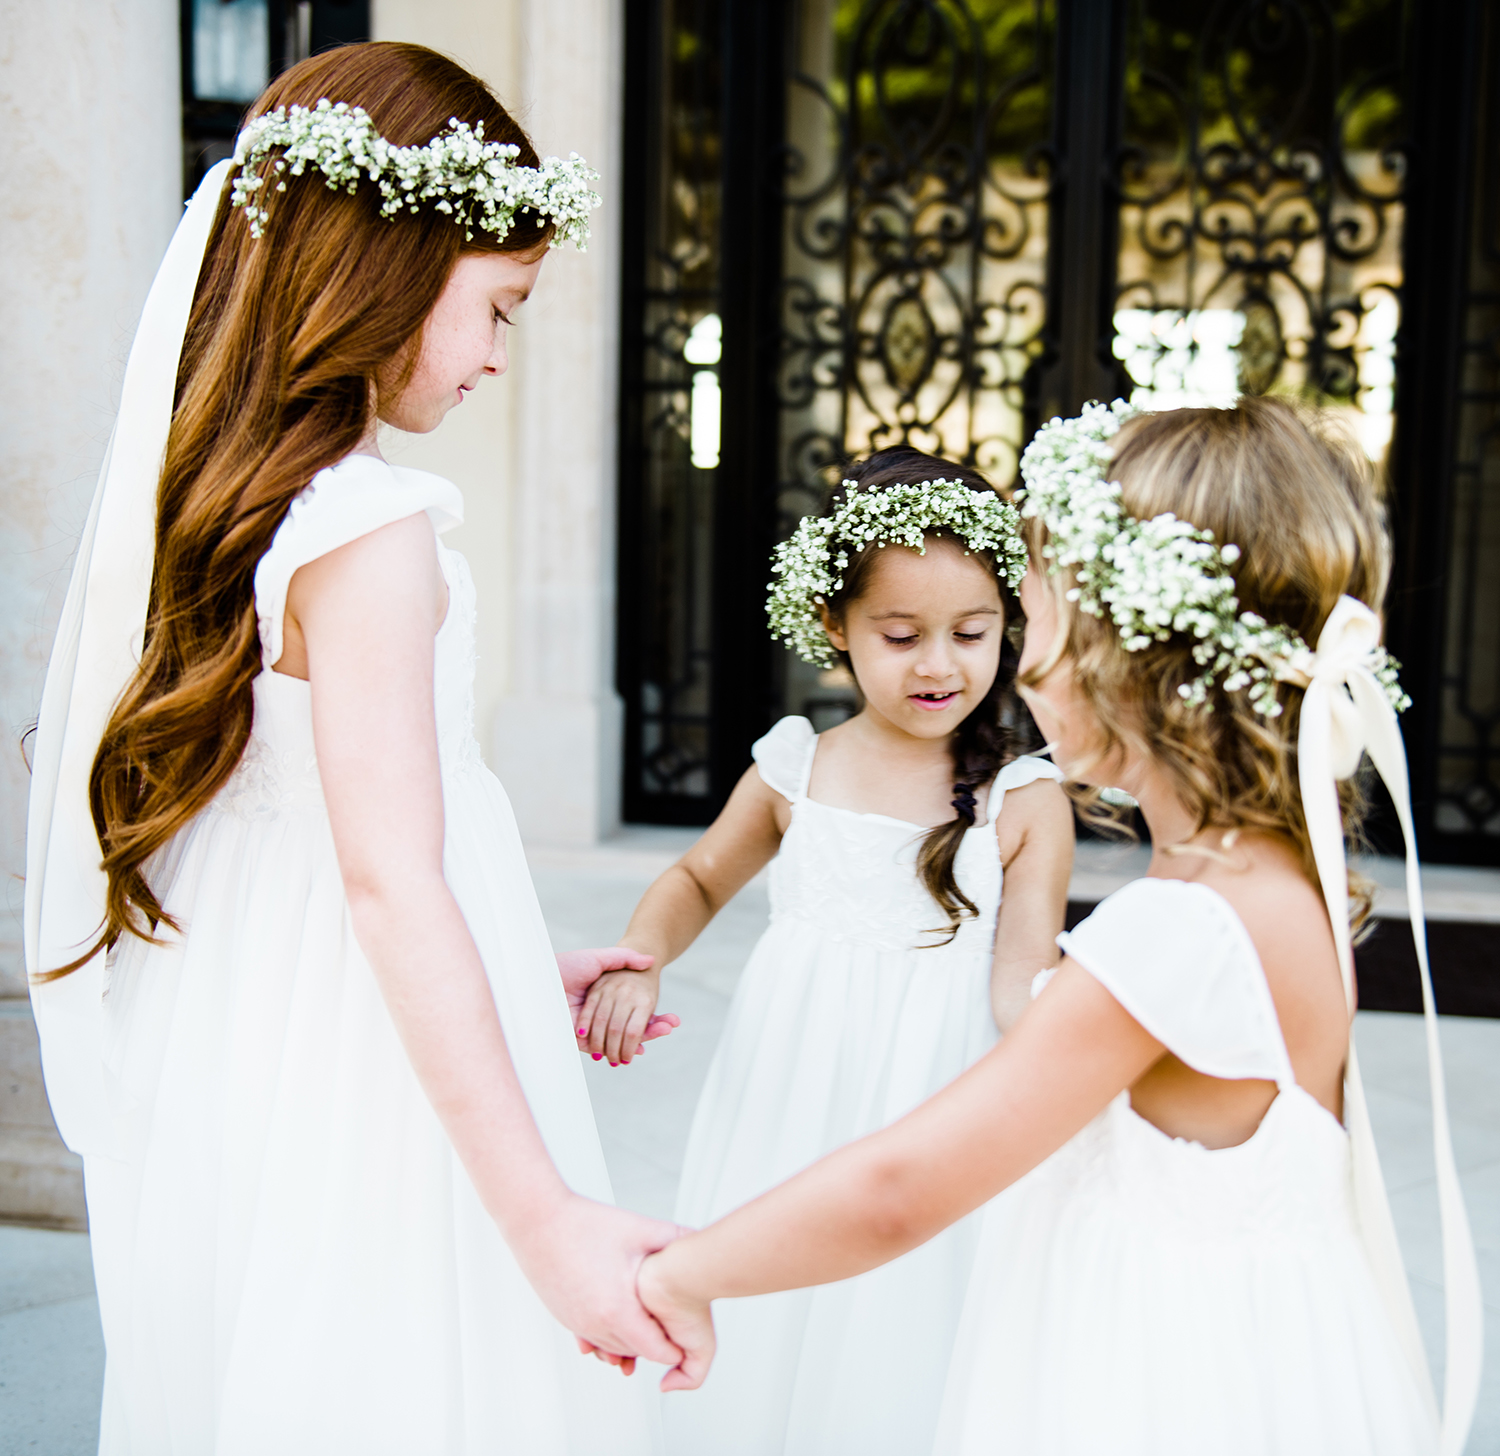 Our Wedding Day! - LivvyLand